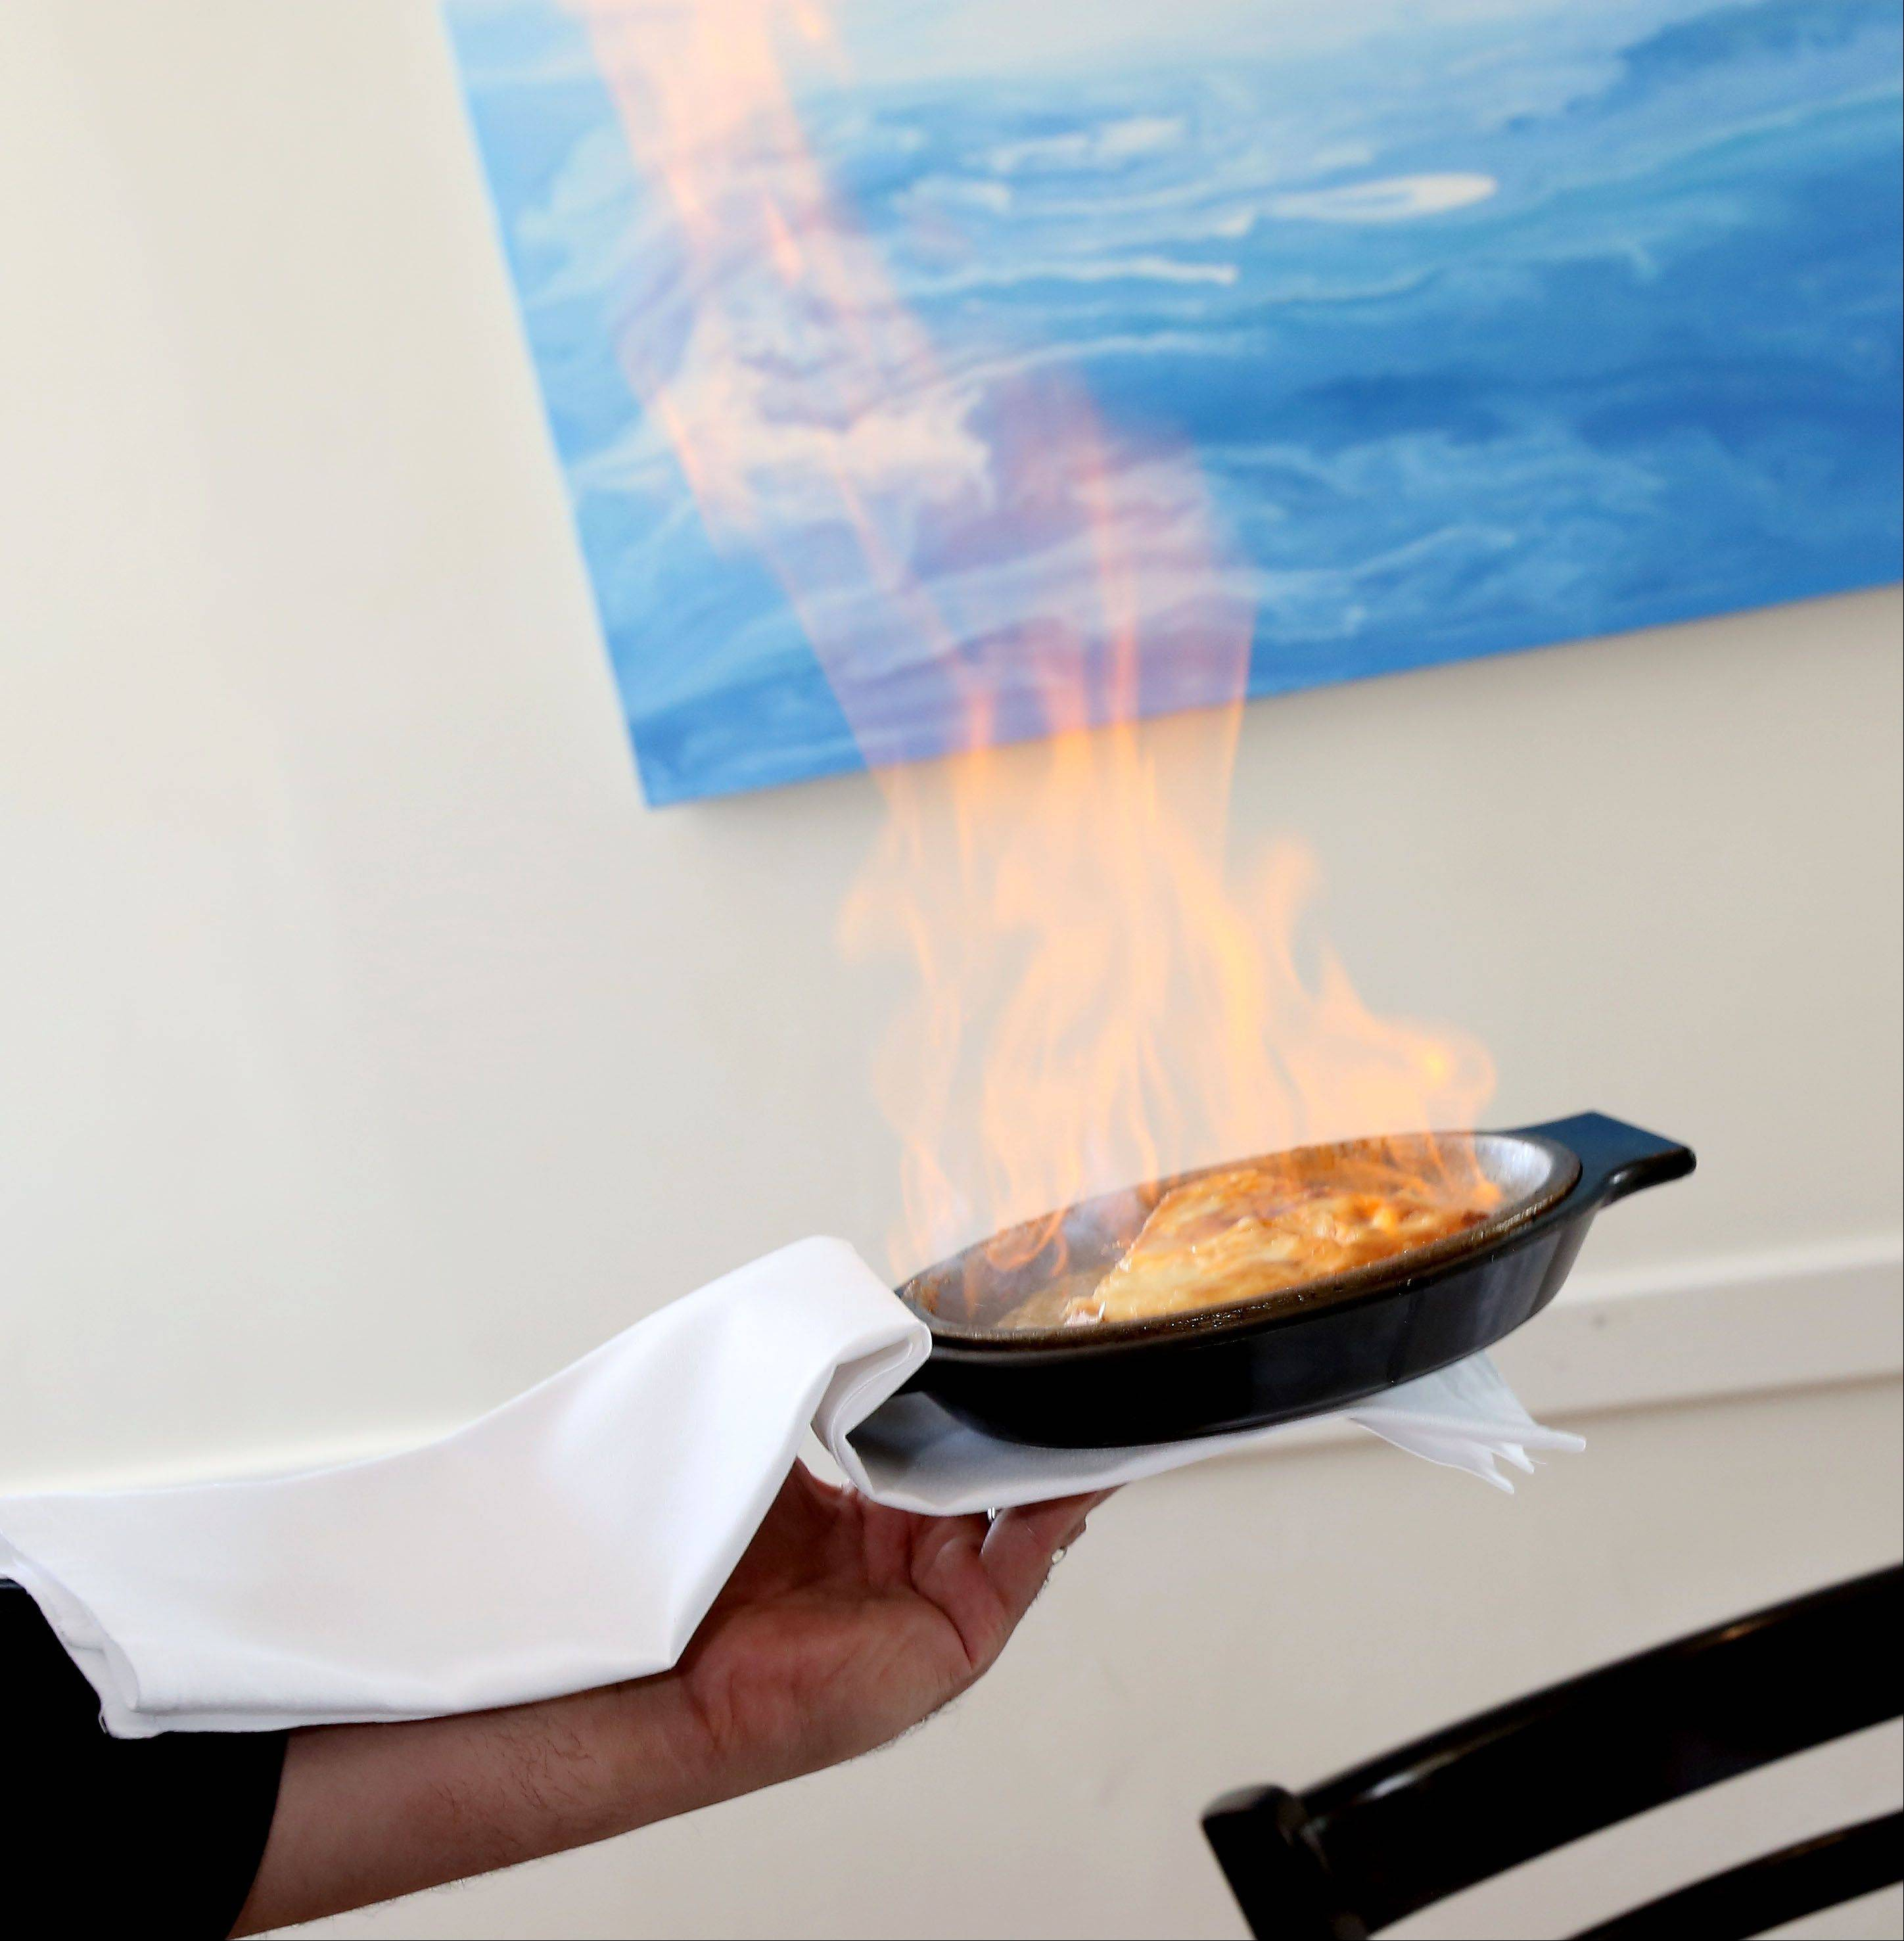 Flaming saganaki turns every meal at Opa! Estiatorio into a celebration.